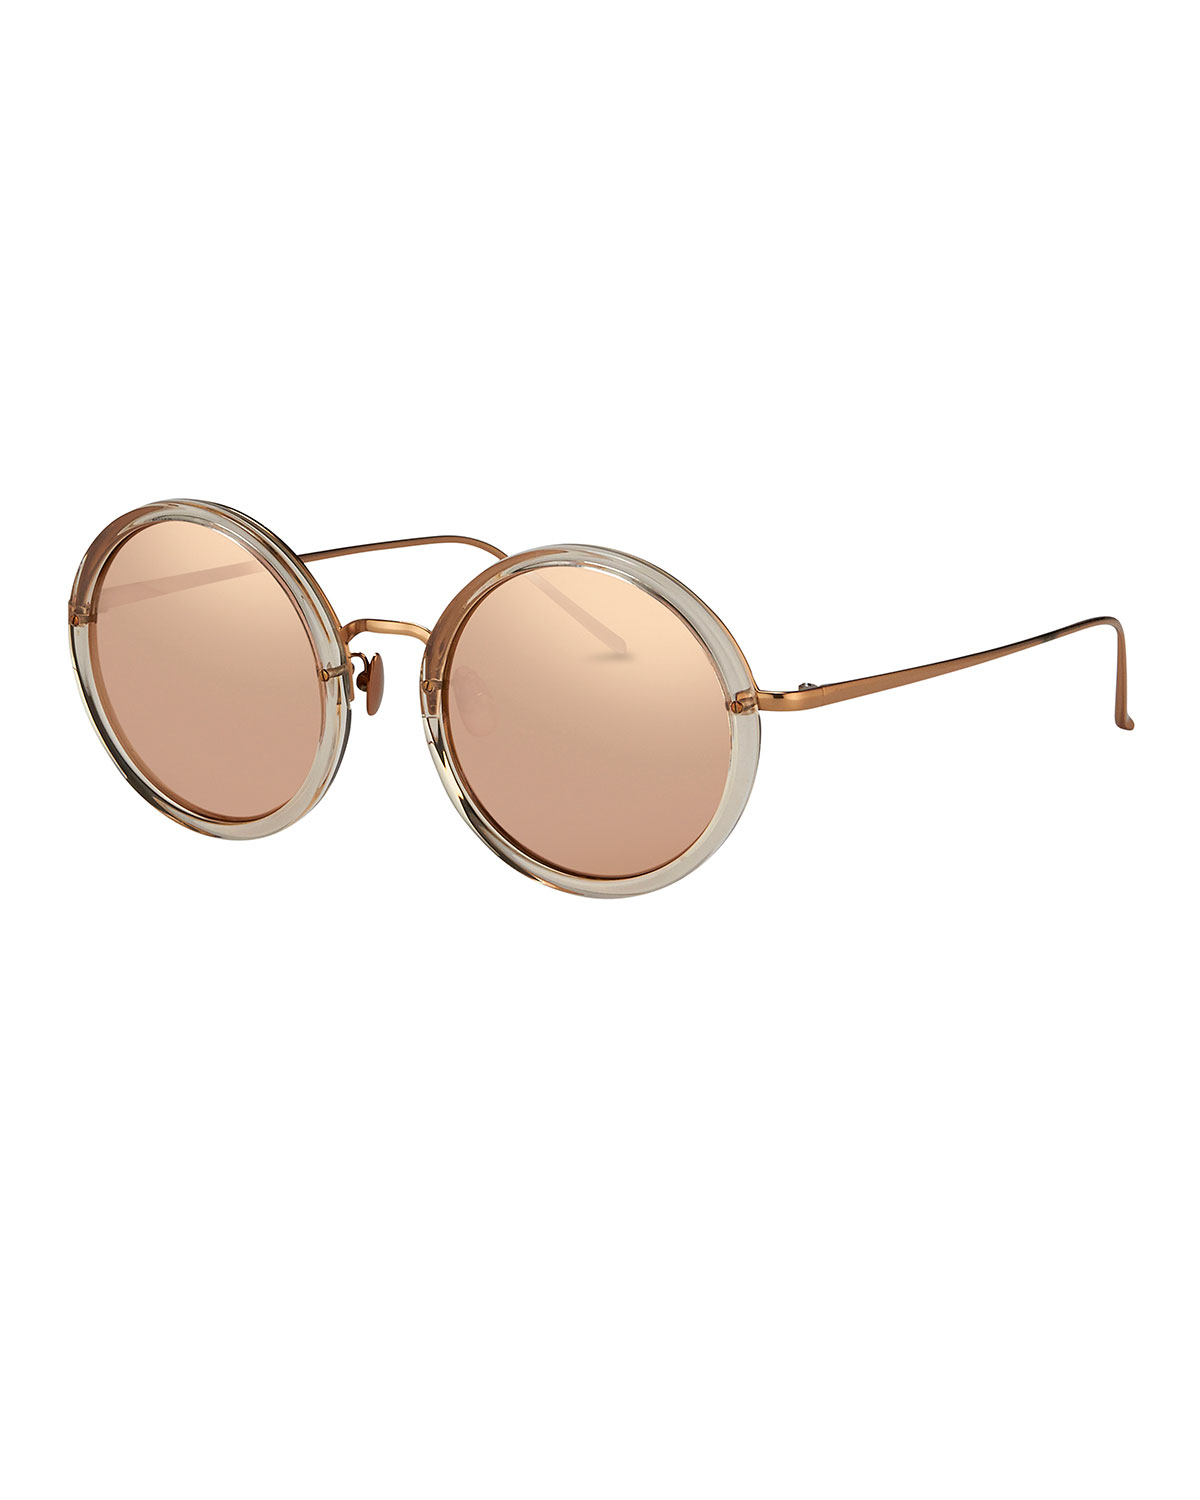 a7892baaabc9 Linda Farrow Trimmed Round Mirrored Sunglasses